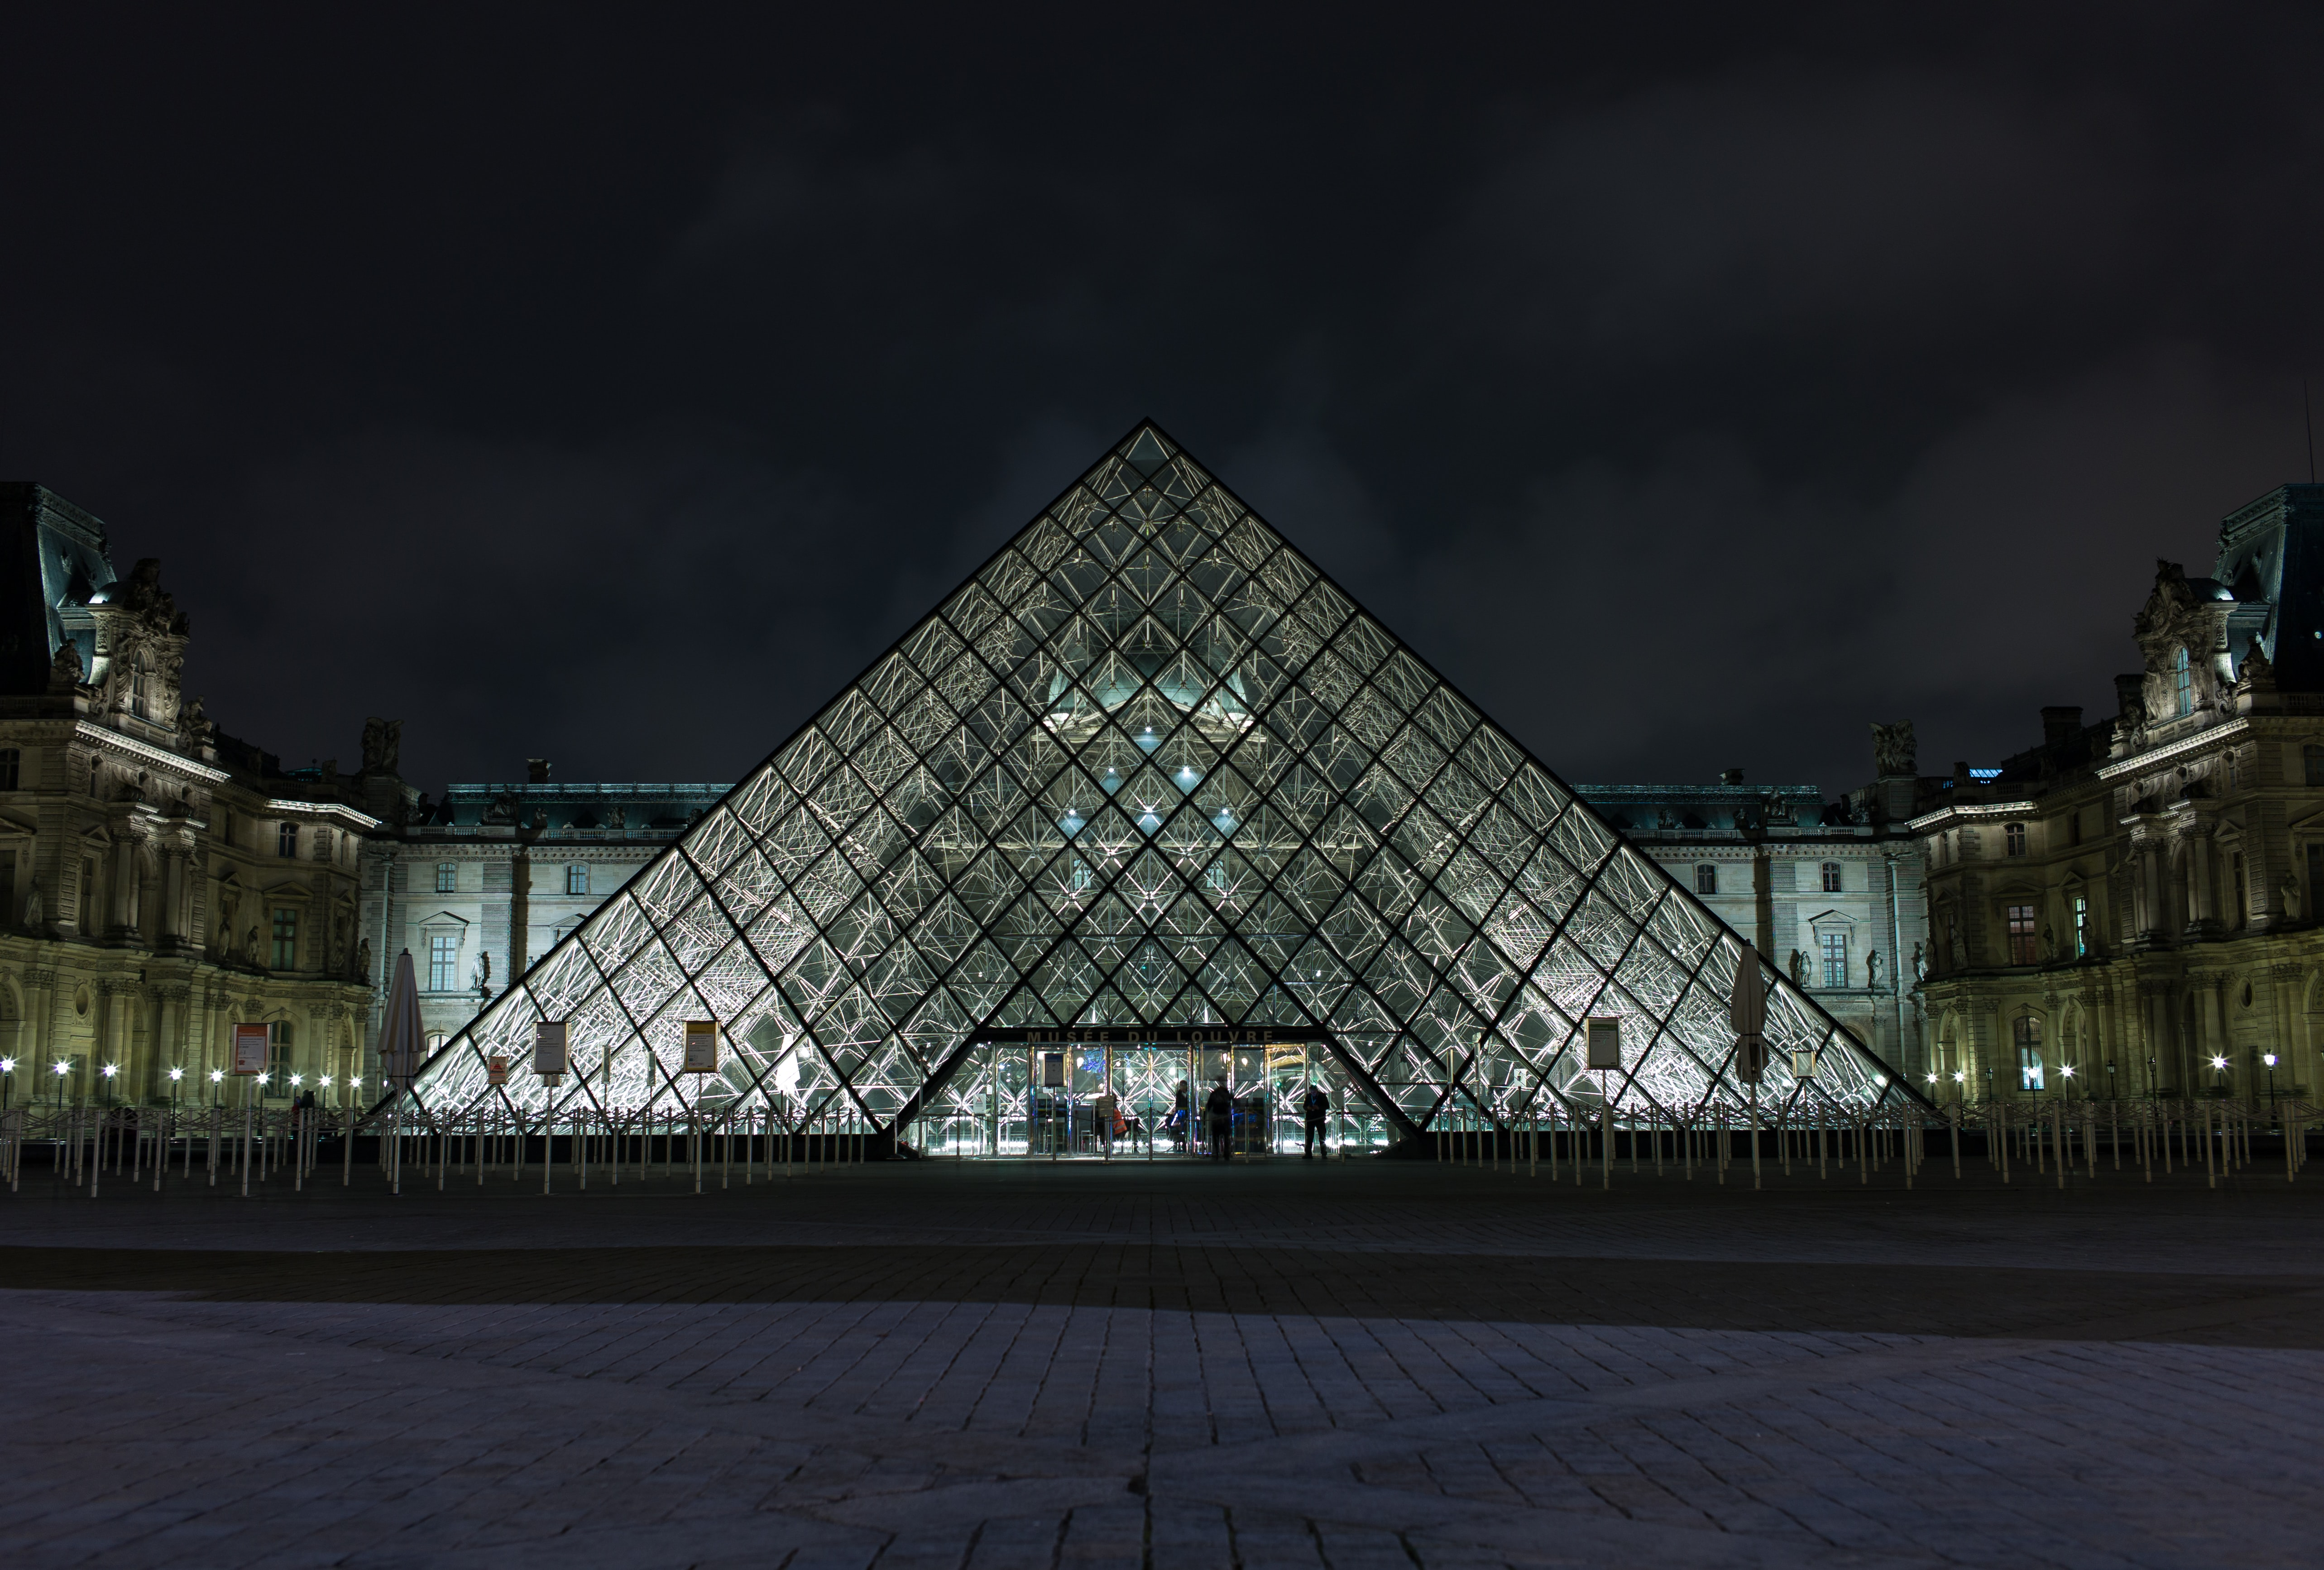 pyramid-shaped clear glass building during night